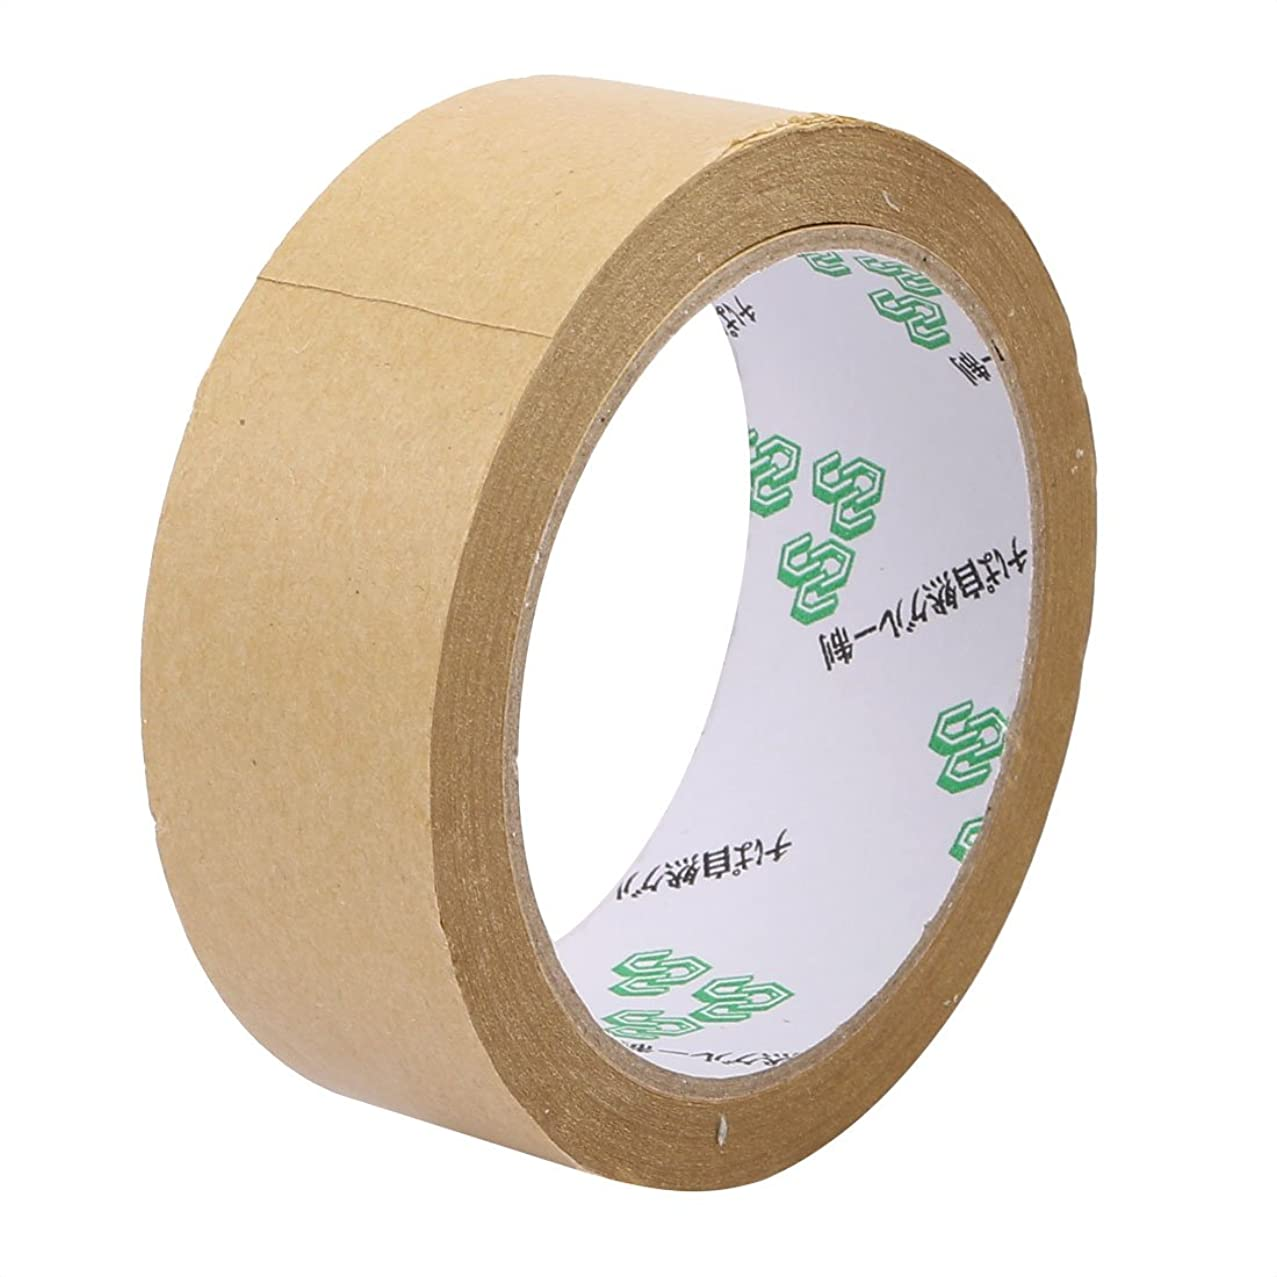 uxcell 35mm x 23M Marking Seal Pack Hot Melt Adhesive Electrical Insulation Tape Tawny